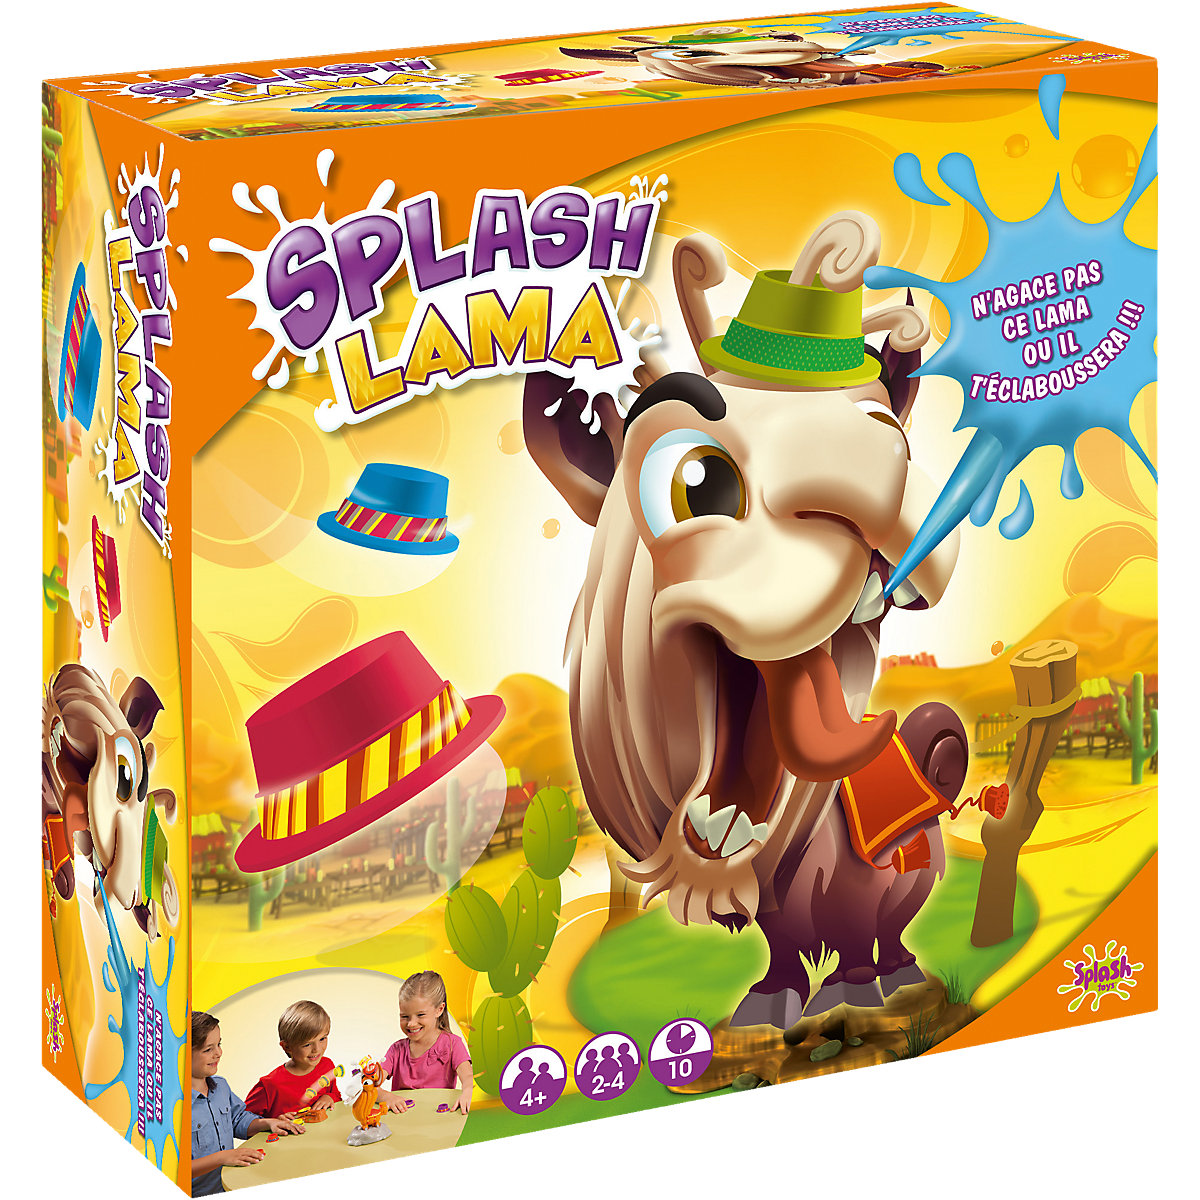 Splash Toys Party Games 4050205 board game fine skills for the company developing play girl boy friends card games moses 090066 fine motor skills board logic kids children